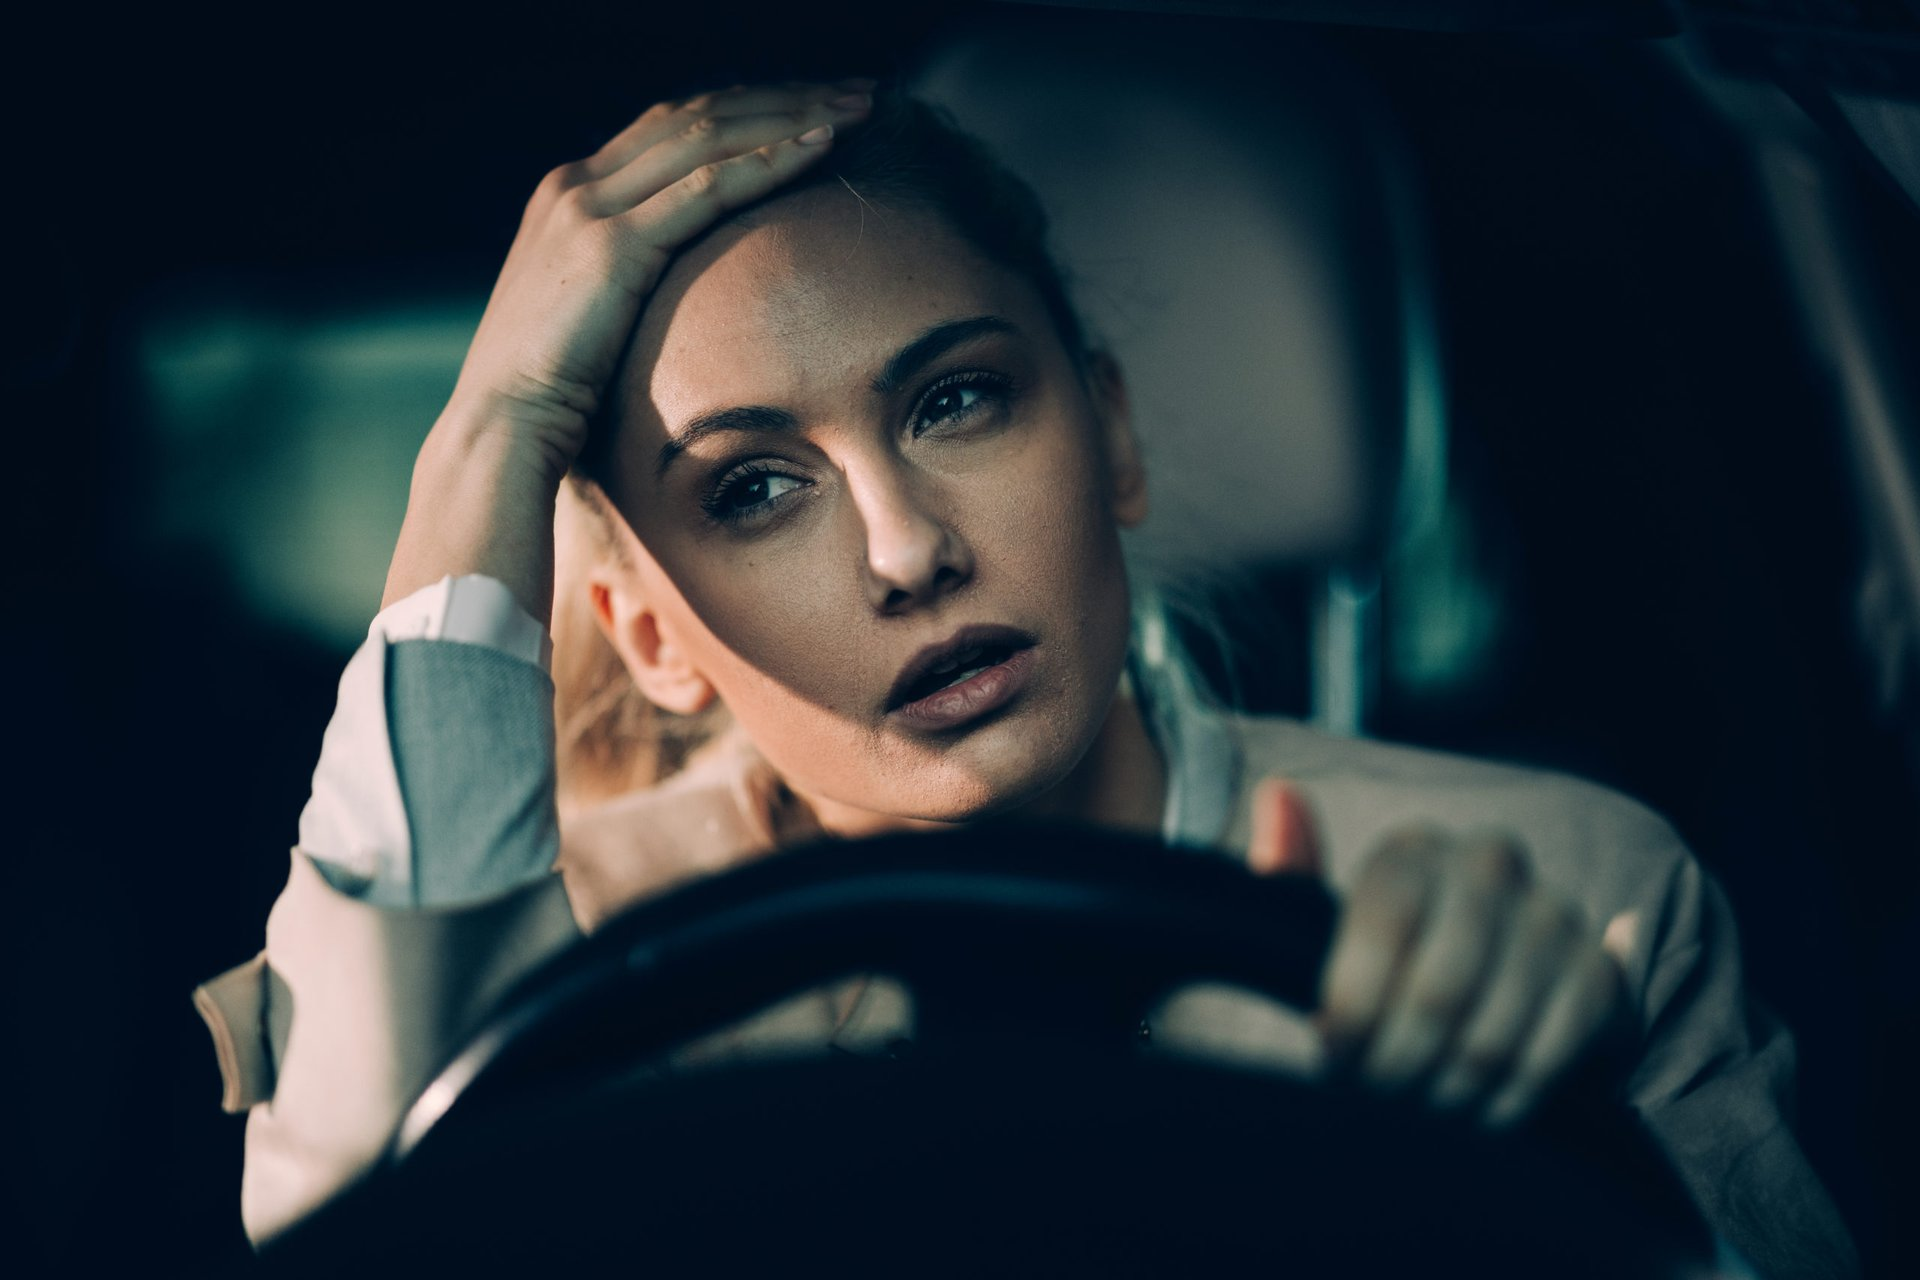 Upset woman driving a car